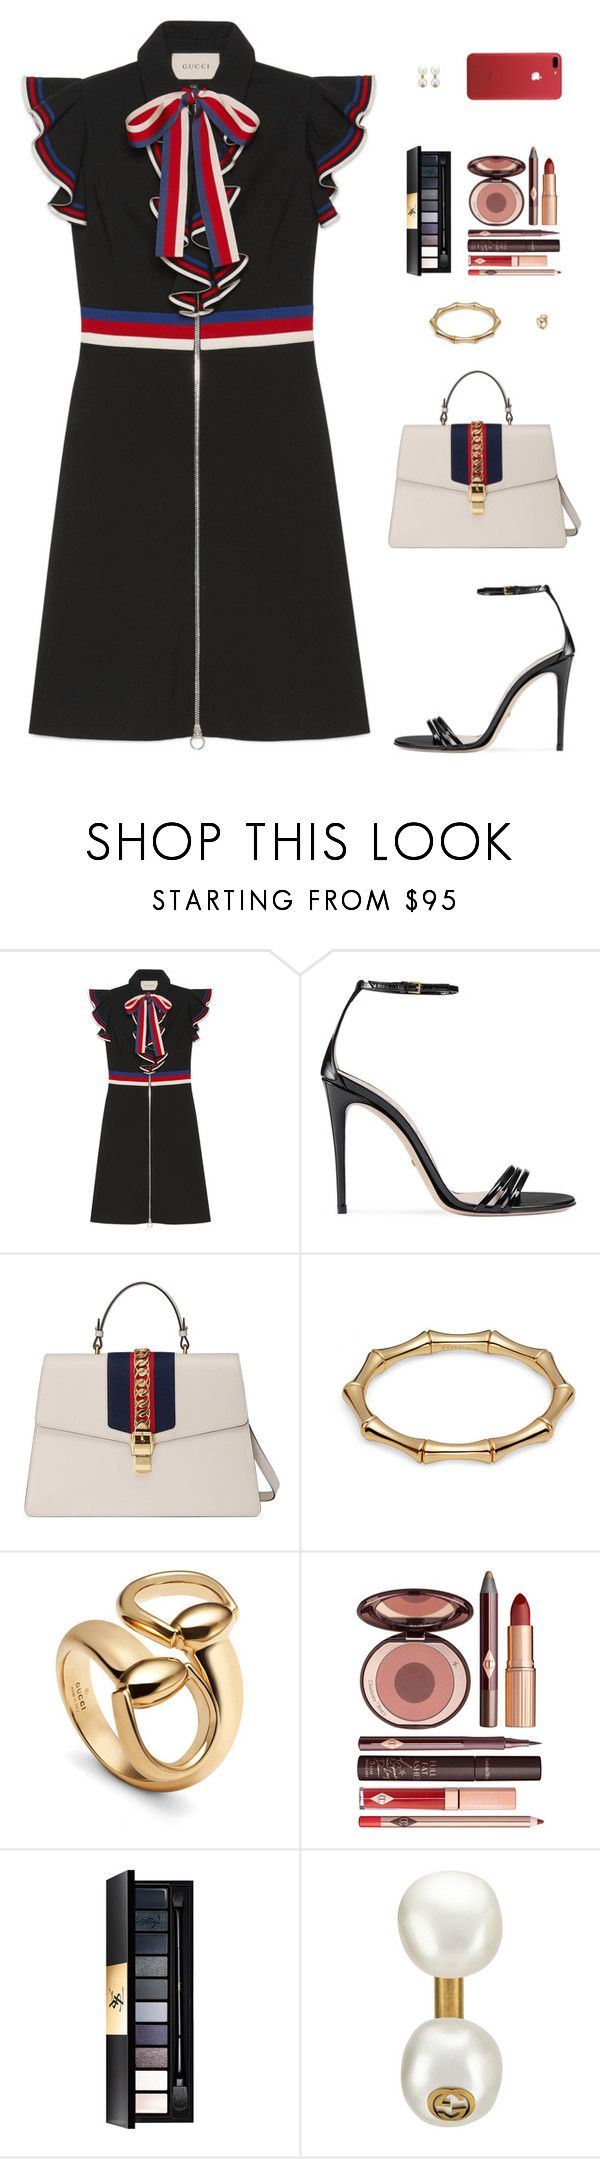 """""""Sin título #4828"""" by mdmsb on Polyvore featuring moda, Gucci, Charlotte Tilbury y Yves Saint Laurent"""